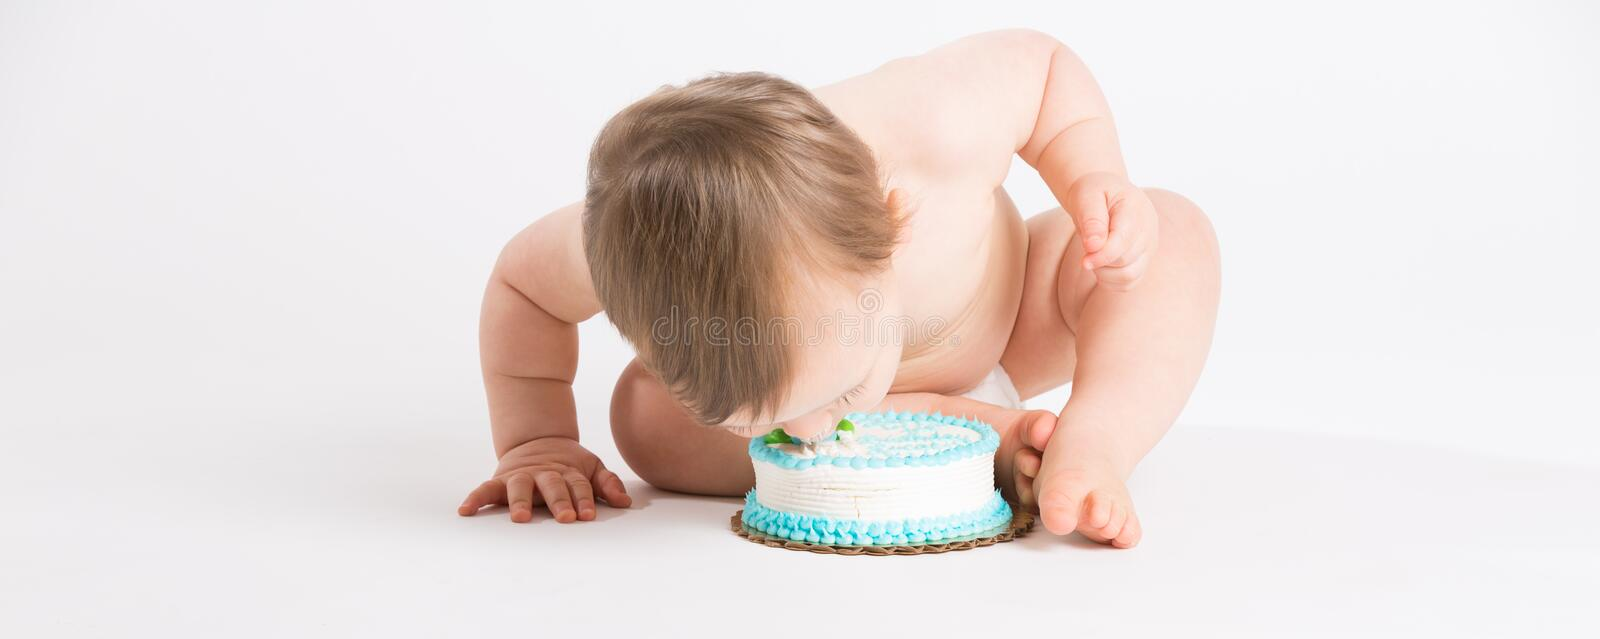 Baby Leaning Face into Cake royalty free stock photography